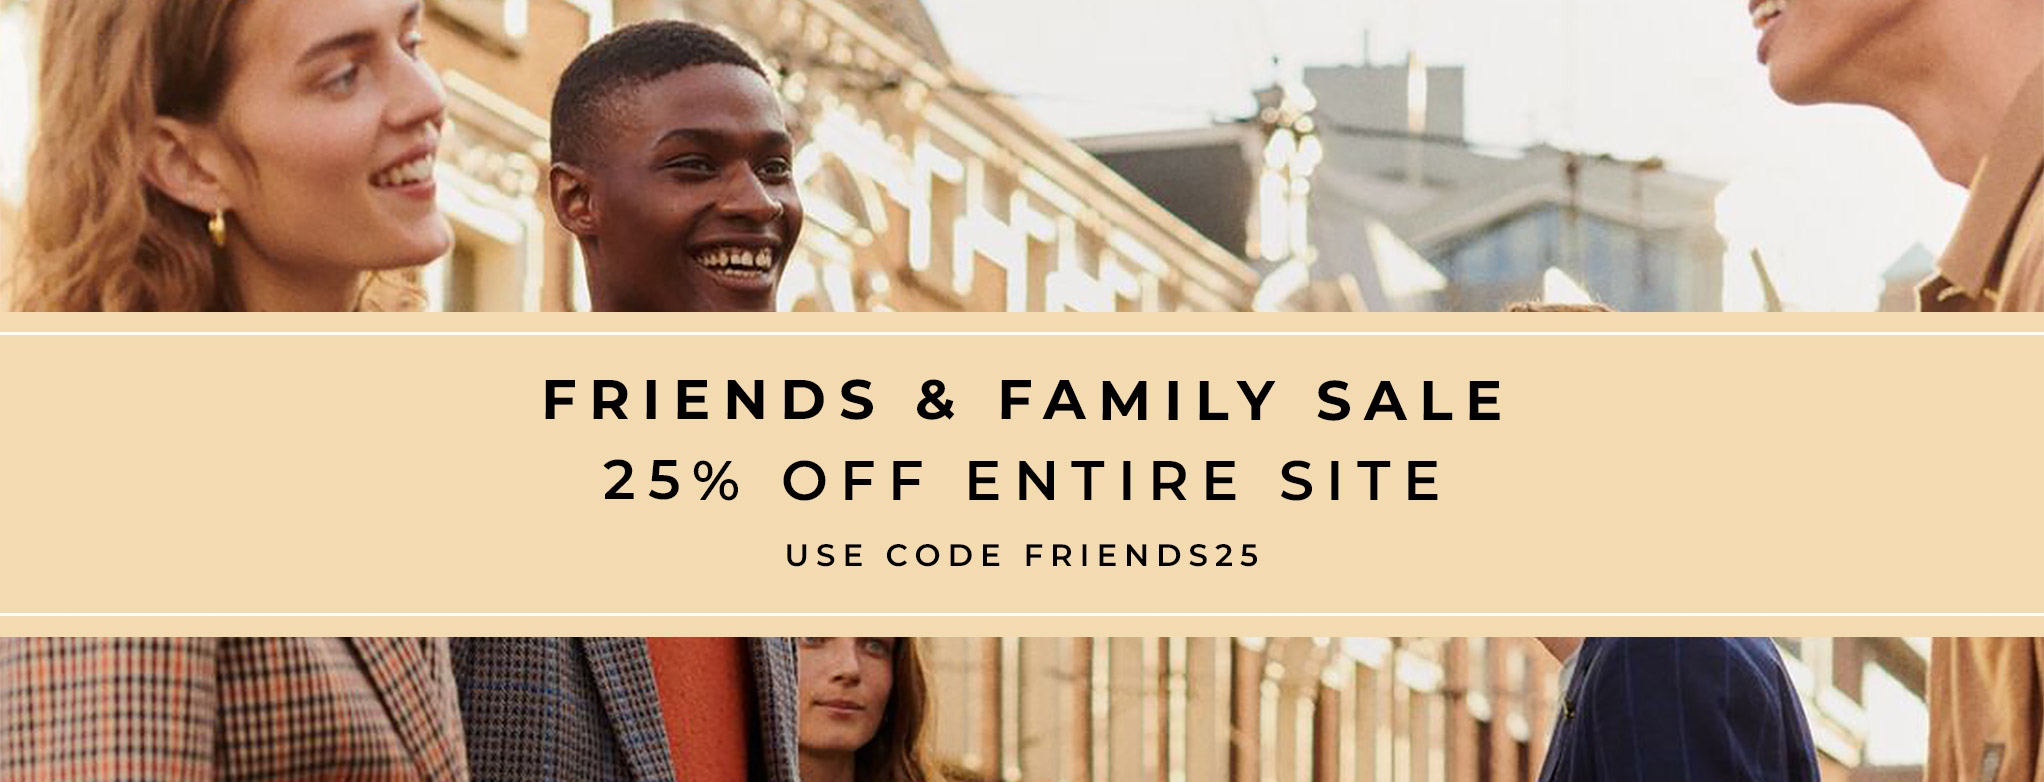 Friends and family sale 25% off sitewide